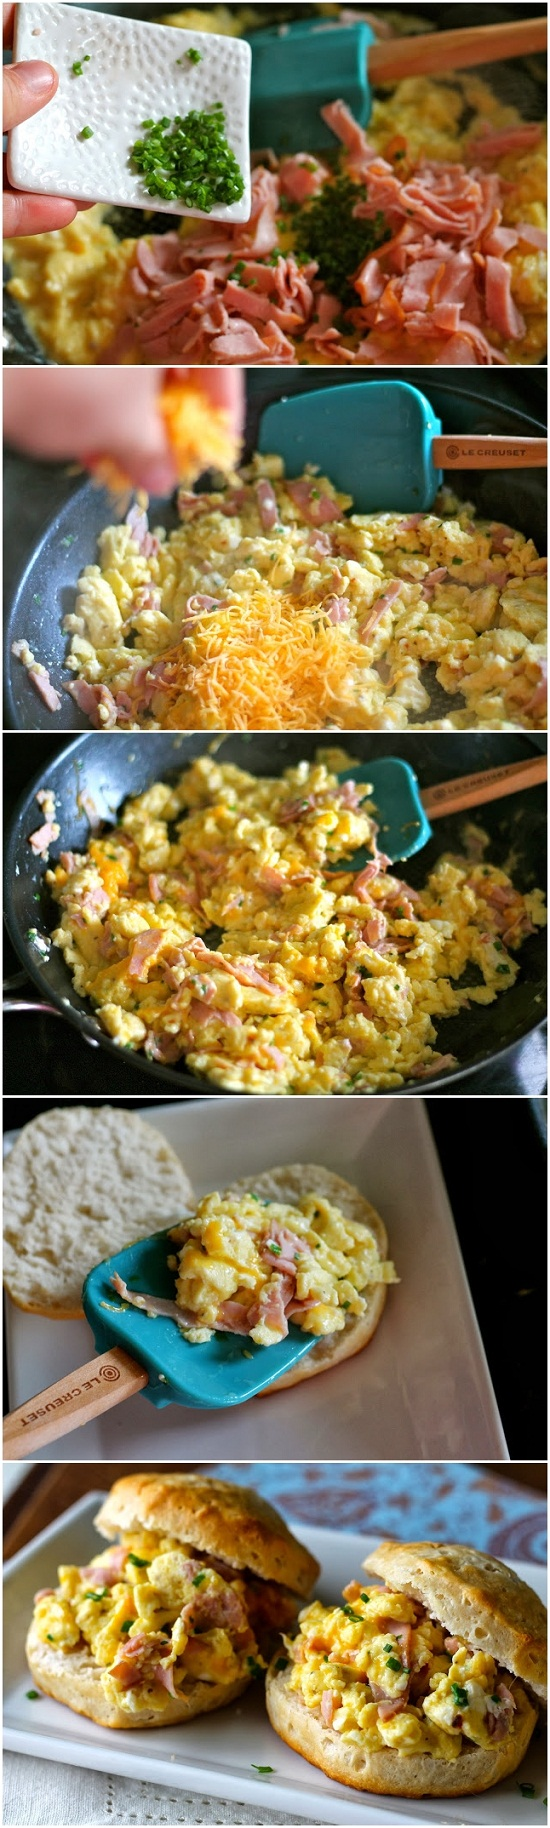 Fancy-Ham-and-Egg-Biscuits-Recipe